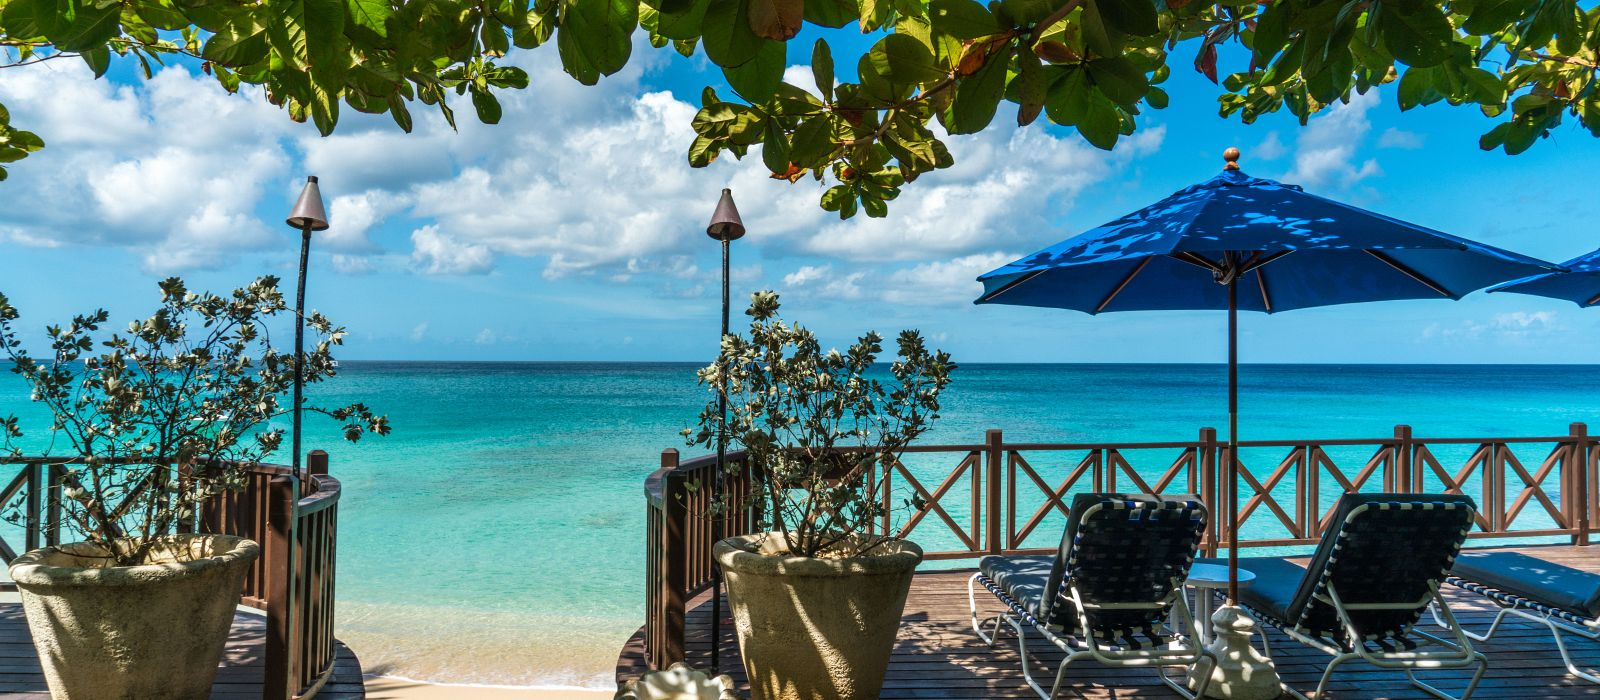 The Sandpiper Barbados beachfront